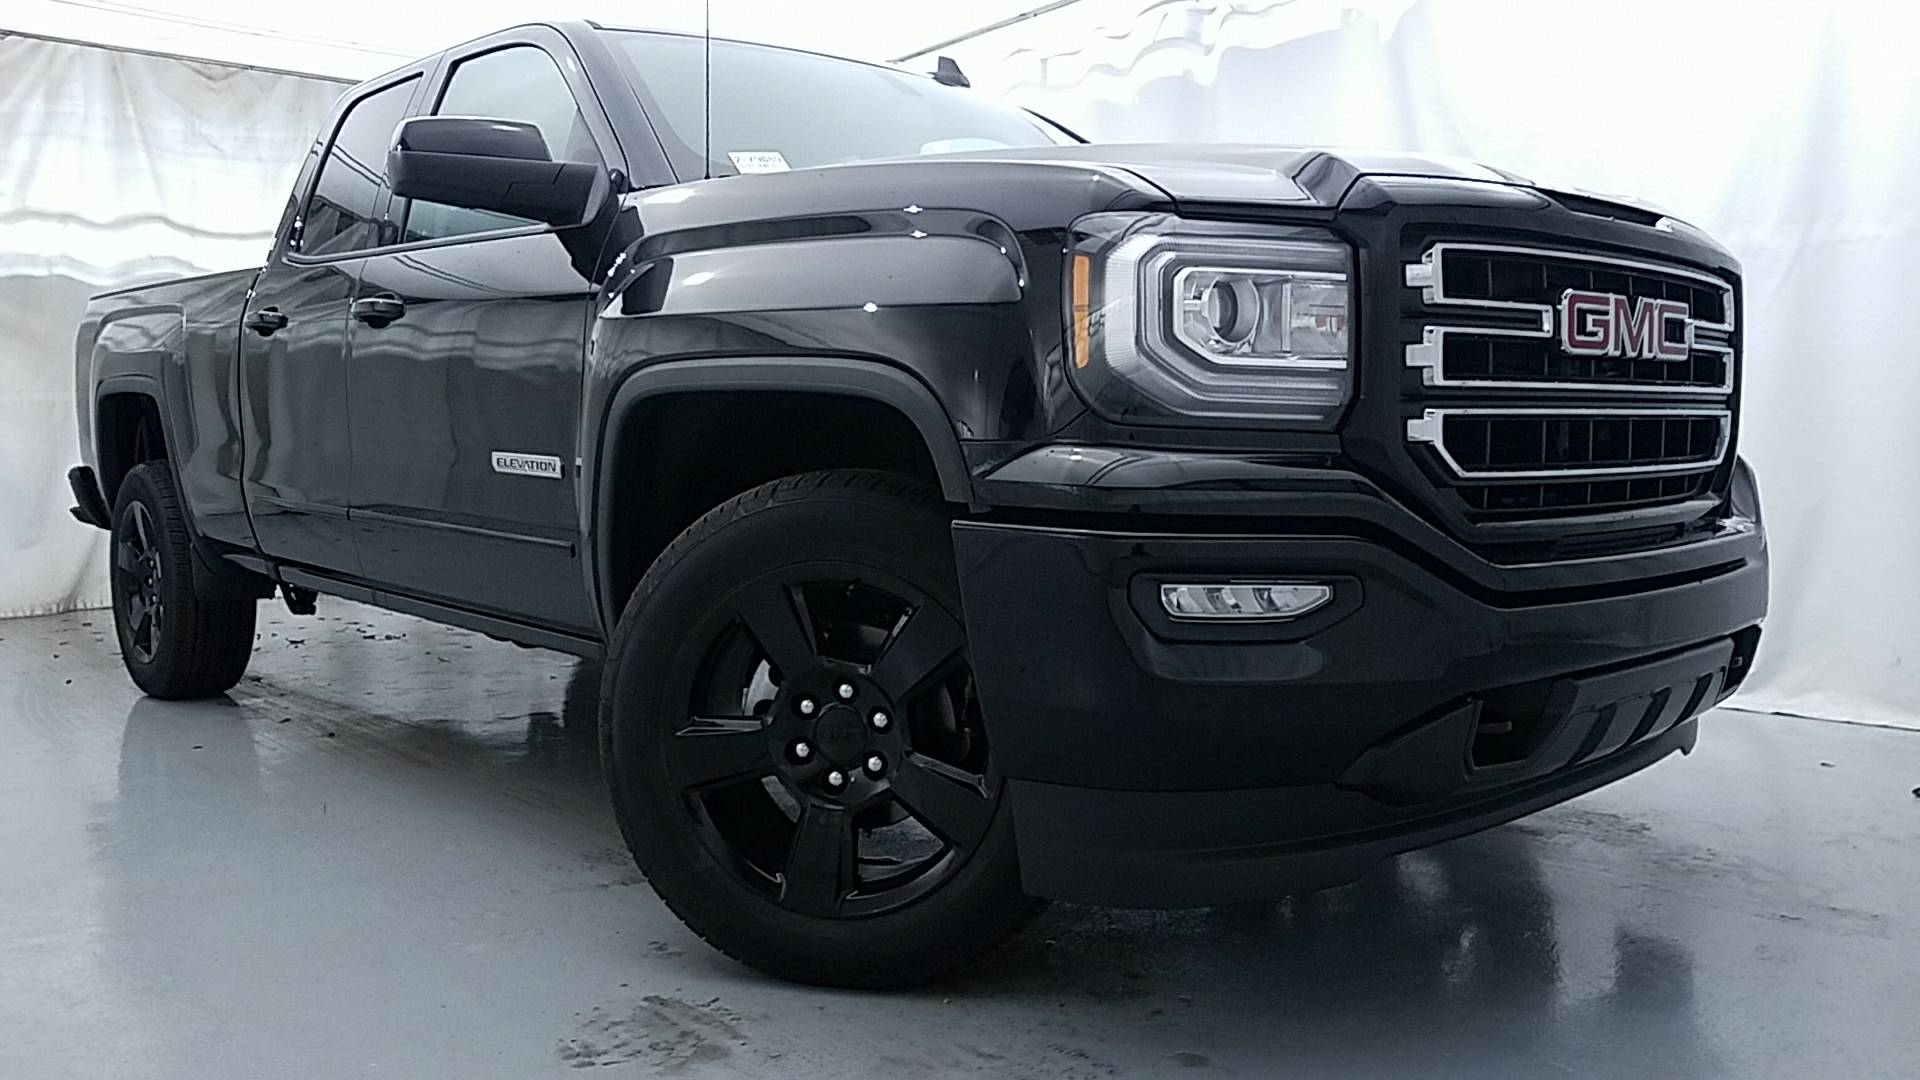 orleans gmc sale sierra rouge in vehicle dp vehicles for new near truck vehiclesearchresults hammond photo baton la